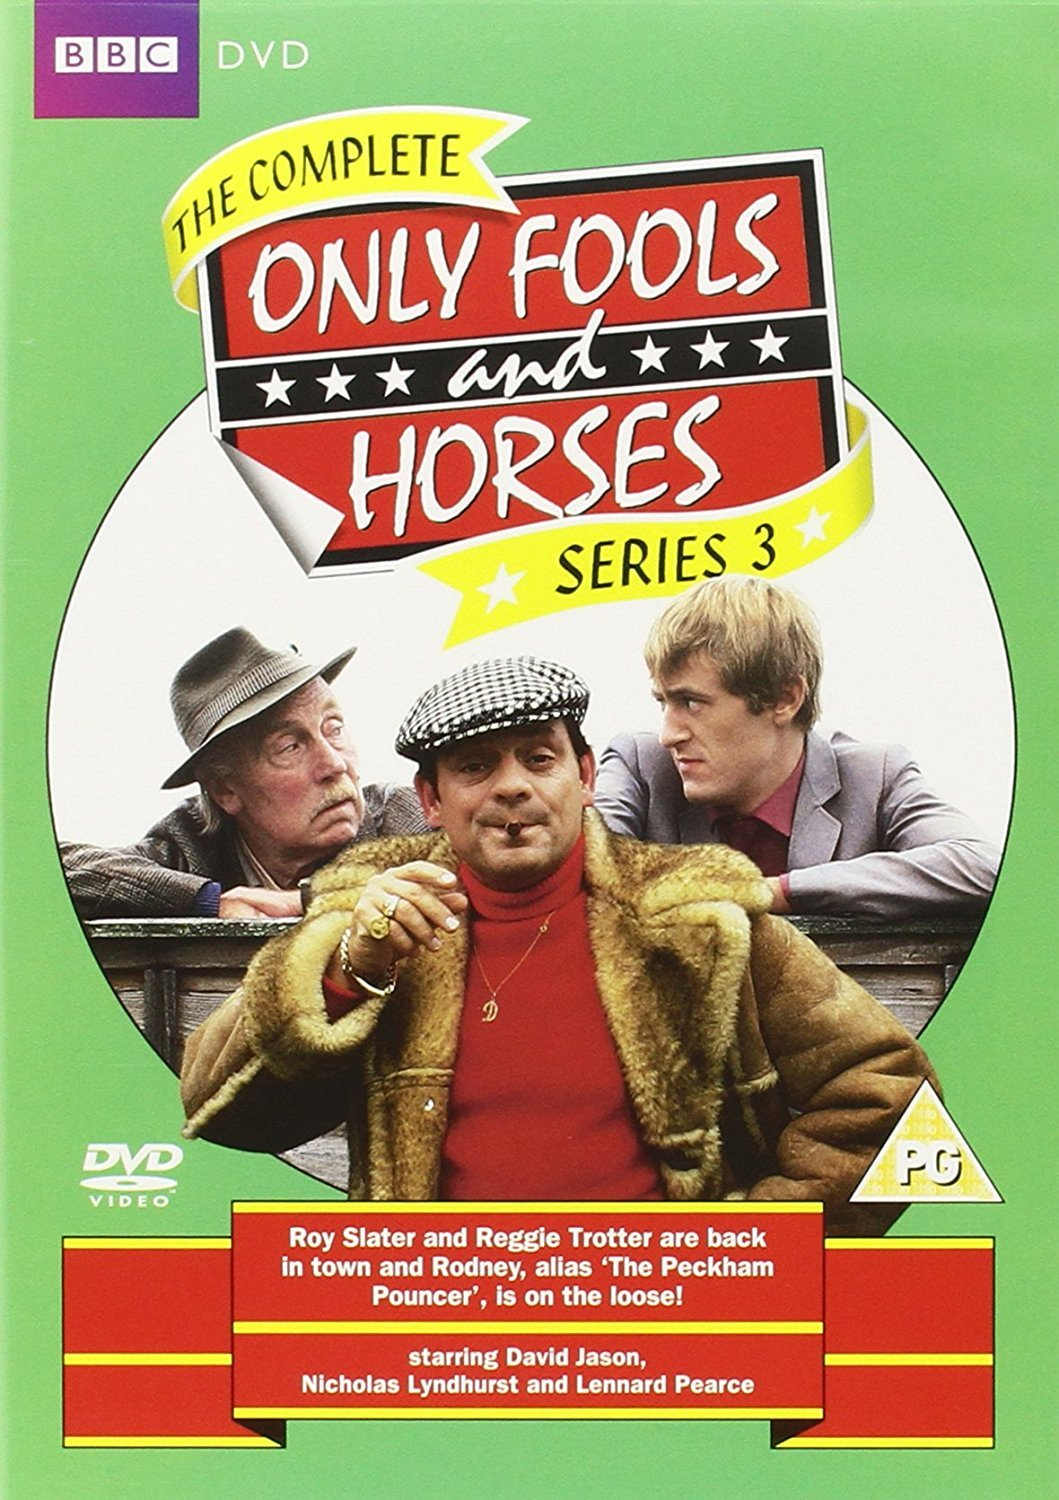 Only Fools And Horses - Complete Series 3 on DVD image